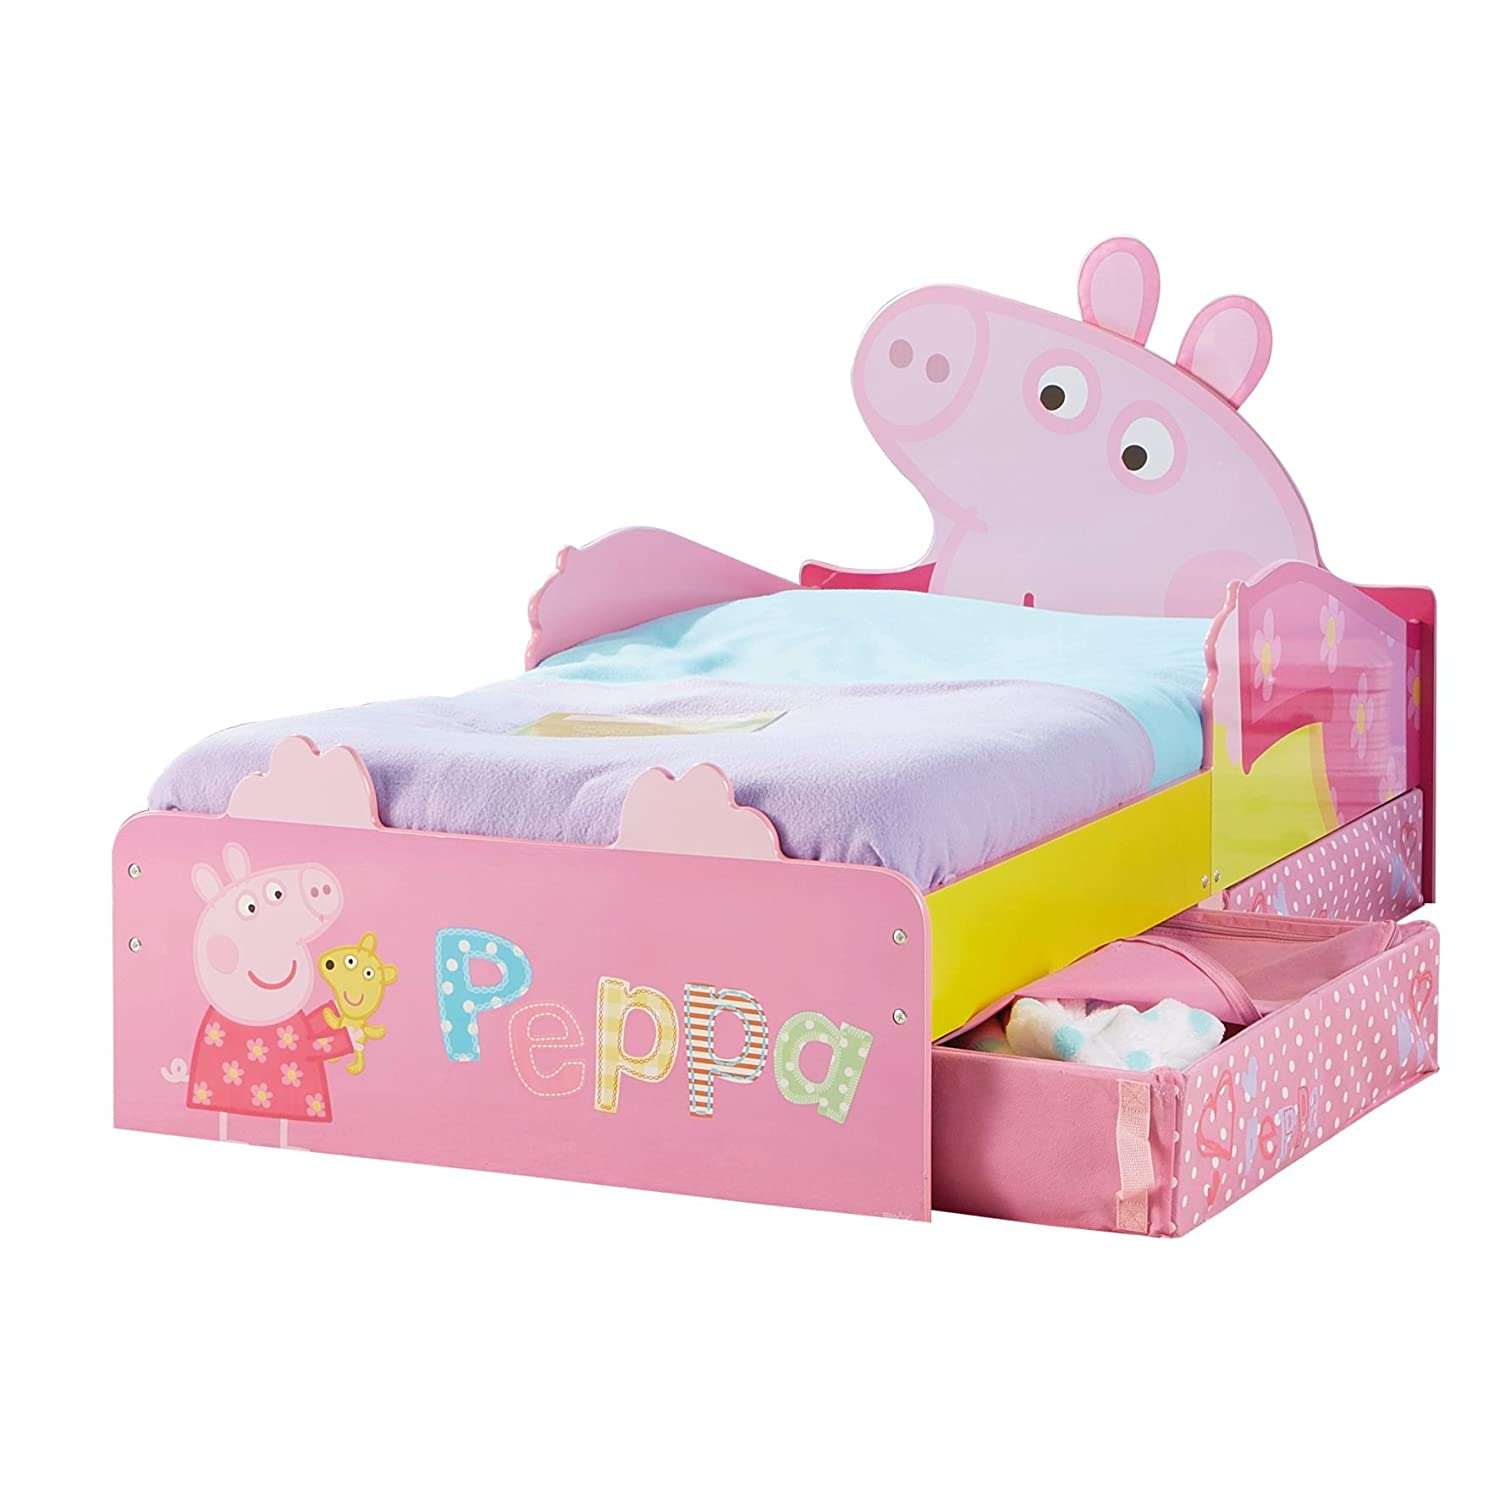 HelloHome Peppa Pig Toddler Bed with Underbed Storage, Wood, Multi, 142 x 77 x 63 cm Worlds Apart 509PEP